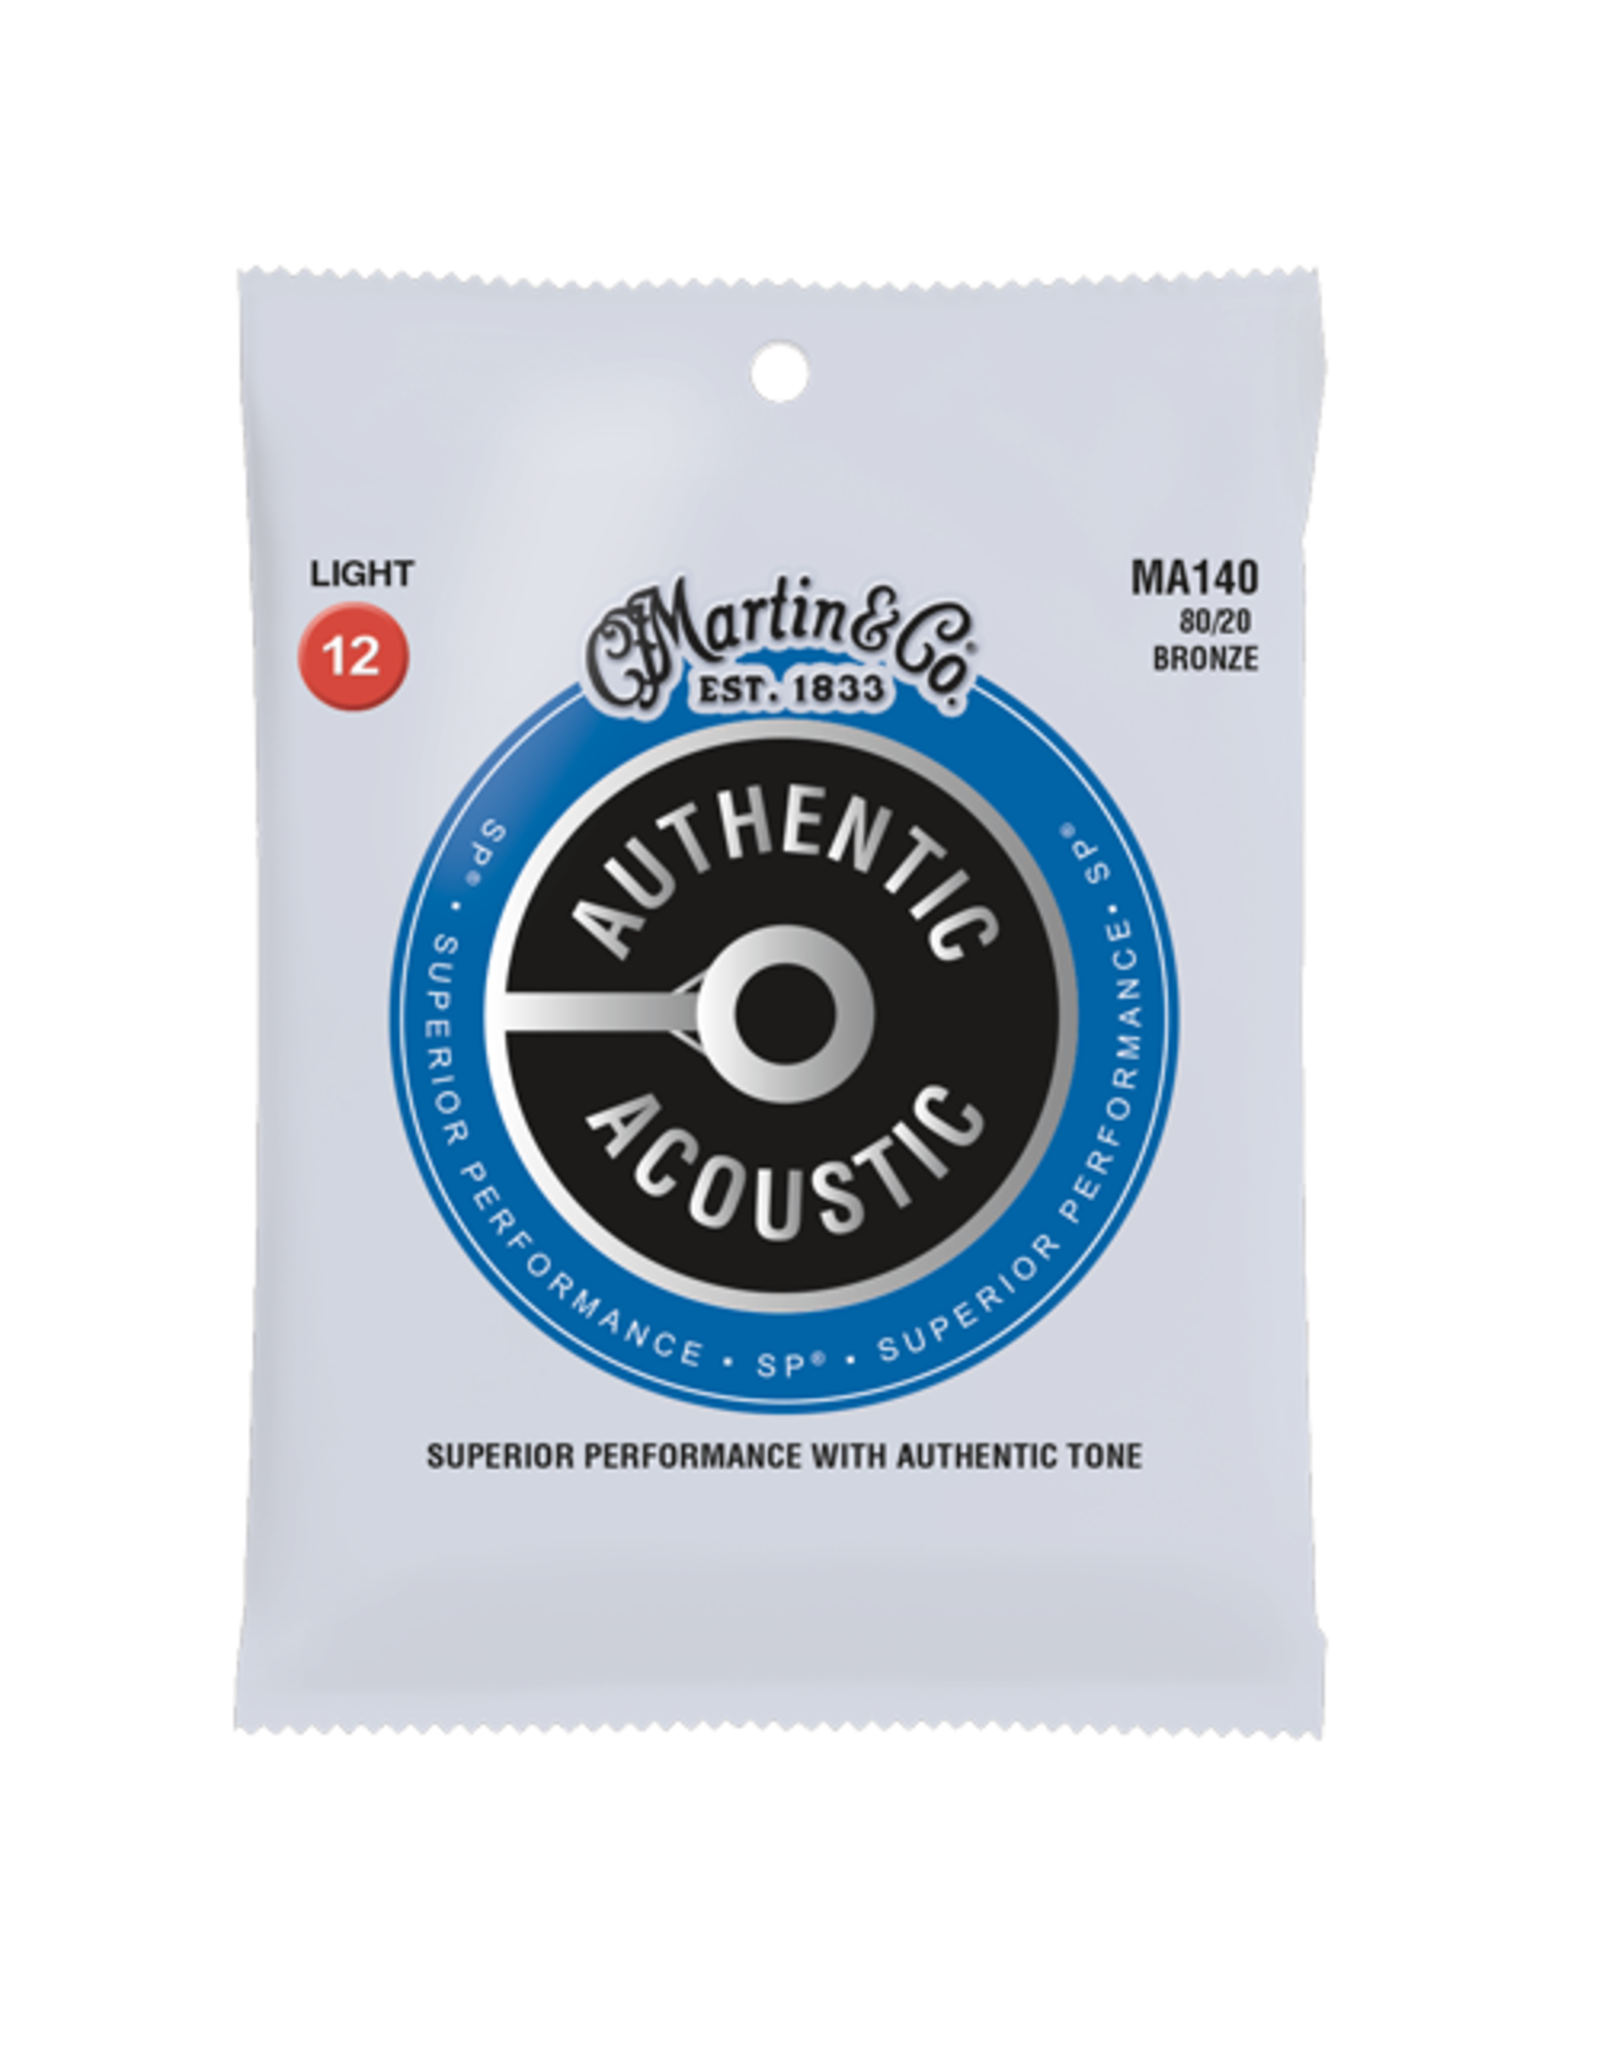 C. F. Martin & Co. Martin MA140 SP 80/20 Bronze Light Authentic Acoustic Guitar Strings